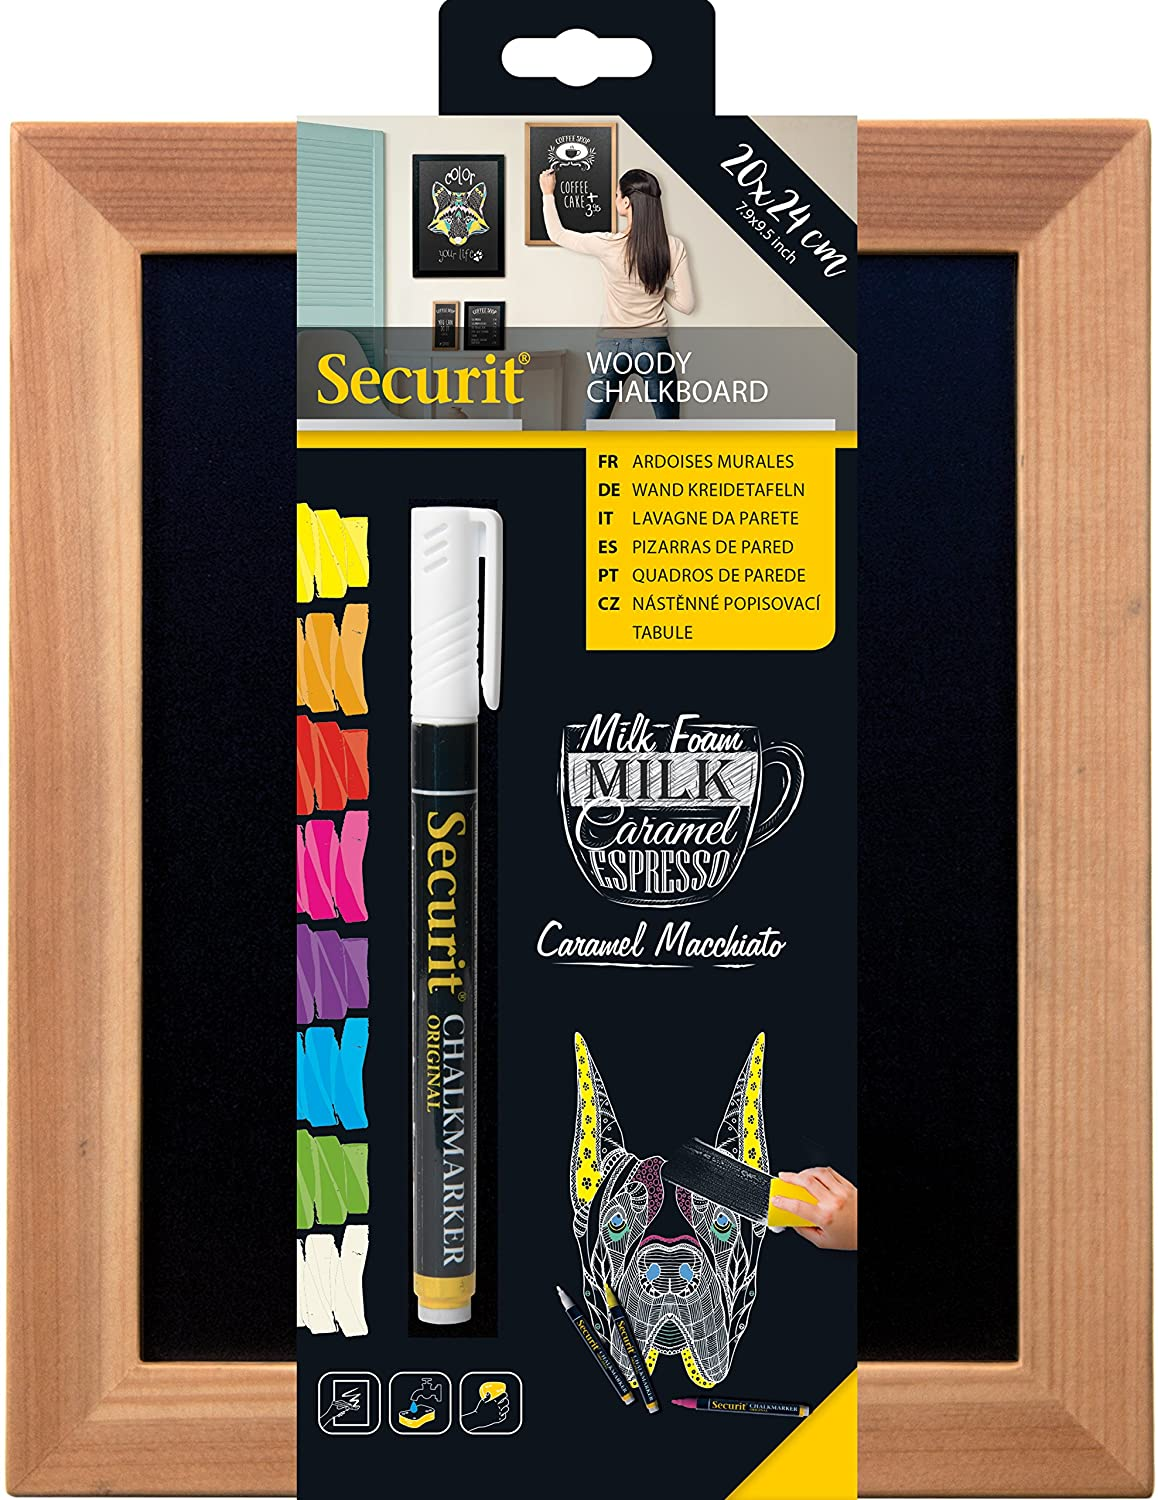 Amazon.com : Securit Woody 20x24cm Wall Chalk Board- Teak by ...